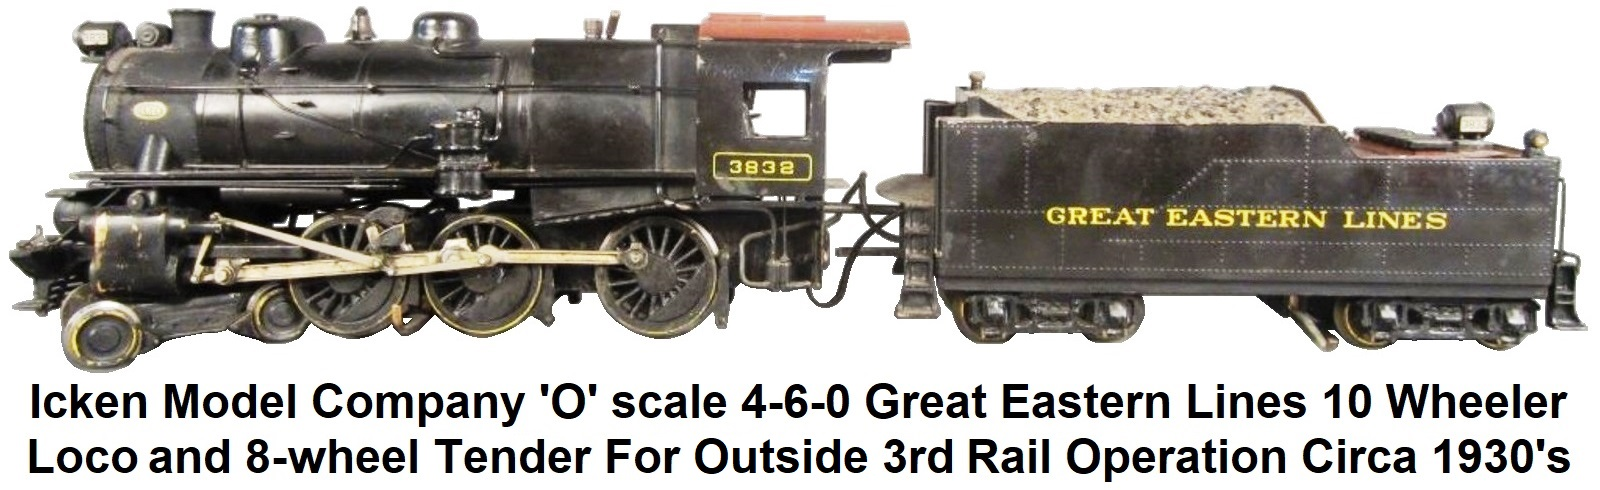 Icken 'O' scale 4-6-0 Great Eastern Lines Ten Wheeler loco & tender for outside 3rd rail operation circa 1930's